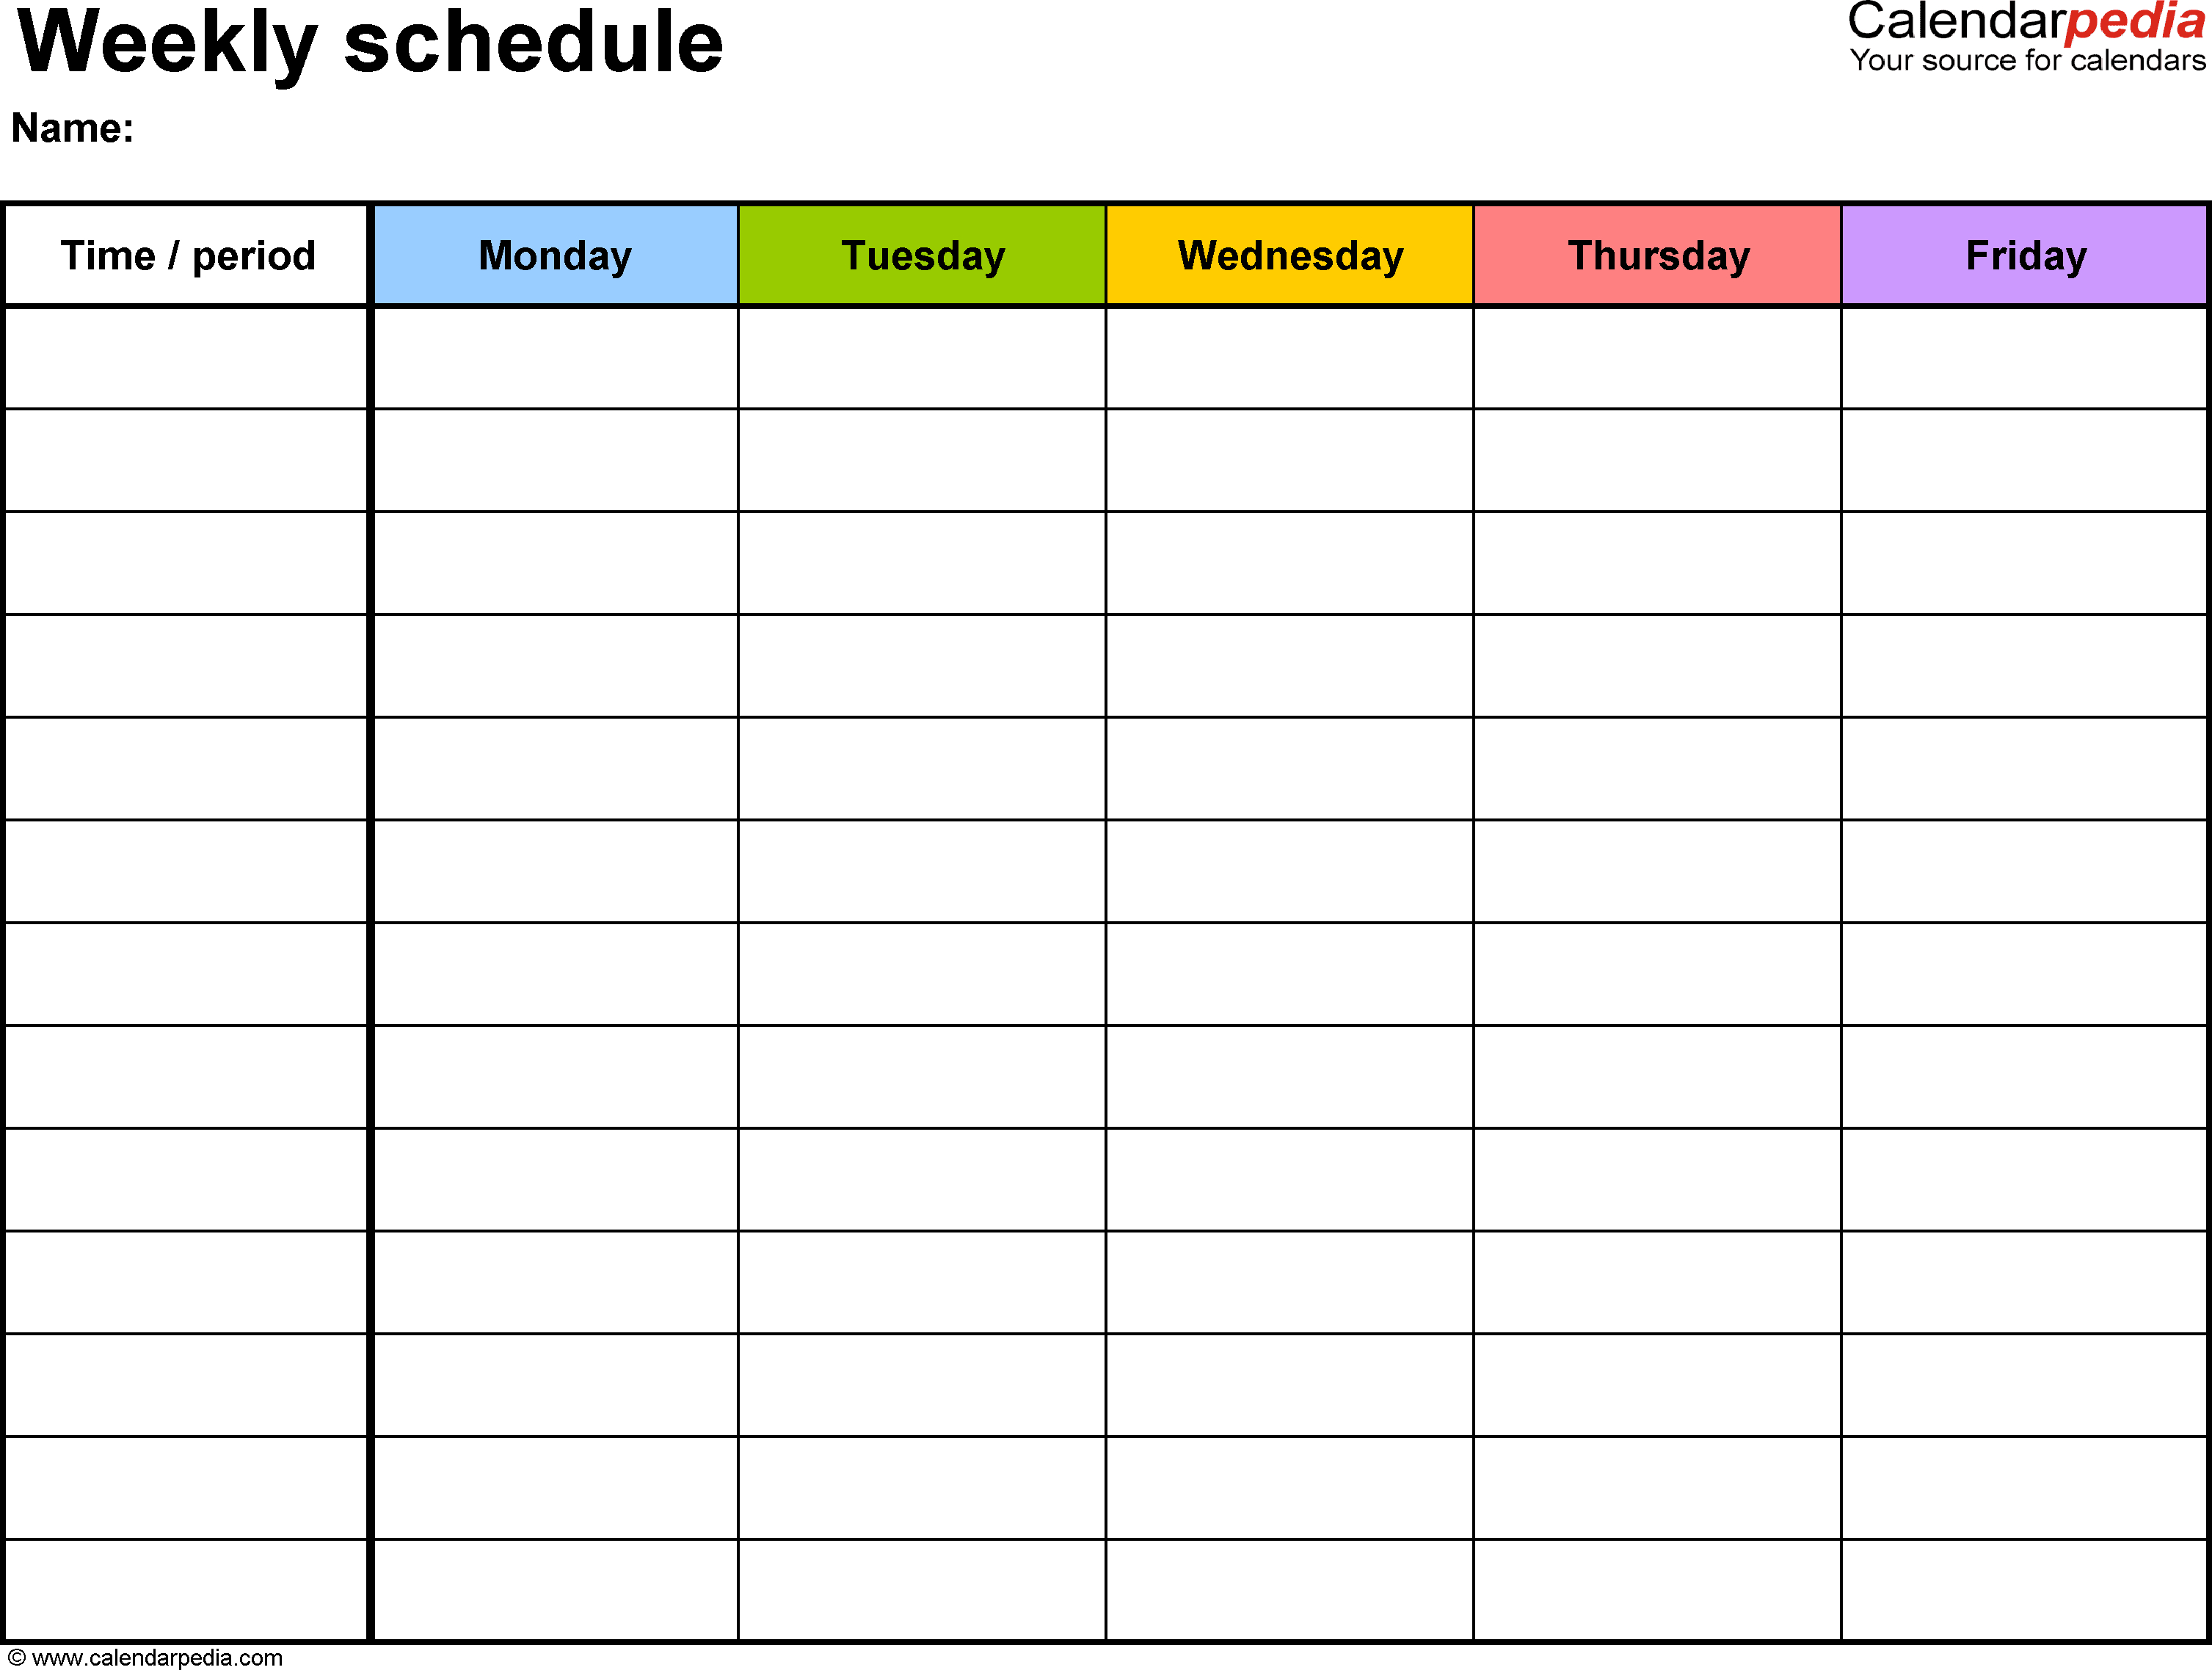 Free Weekly Schedule Templates For Word - 18 Templates in Weekly Calendar Template 7 Day